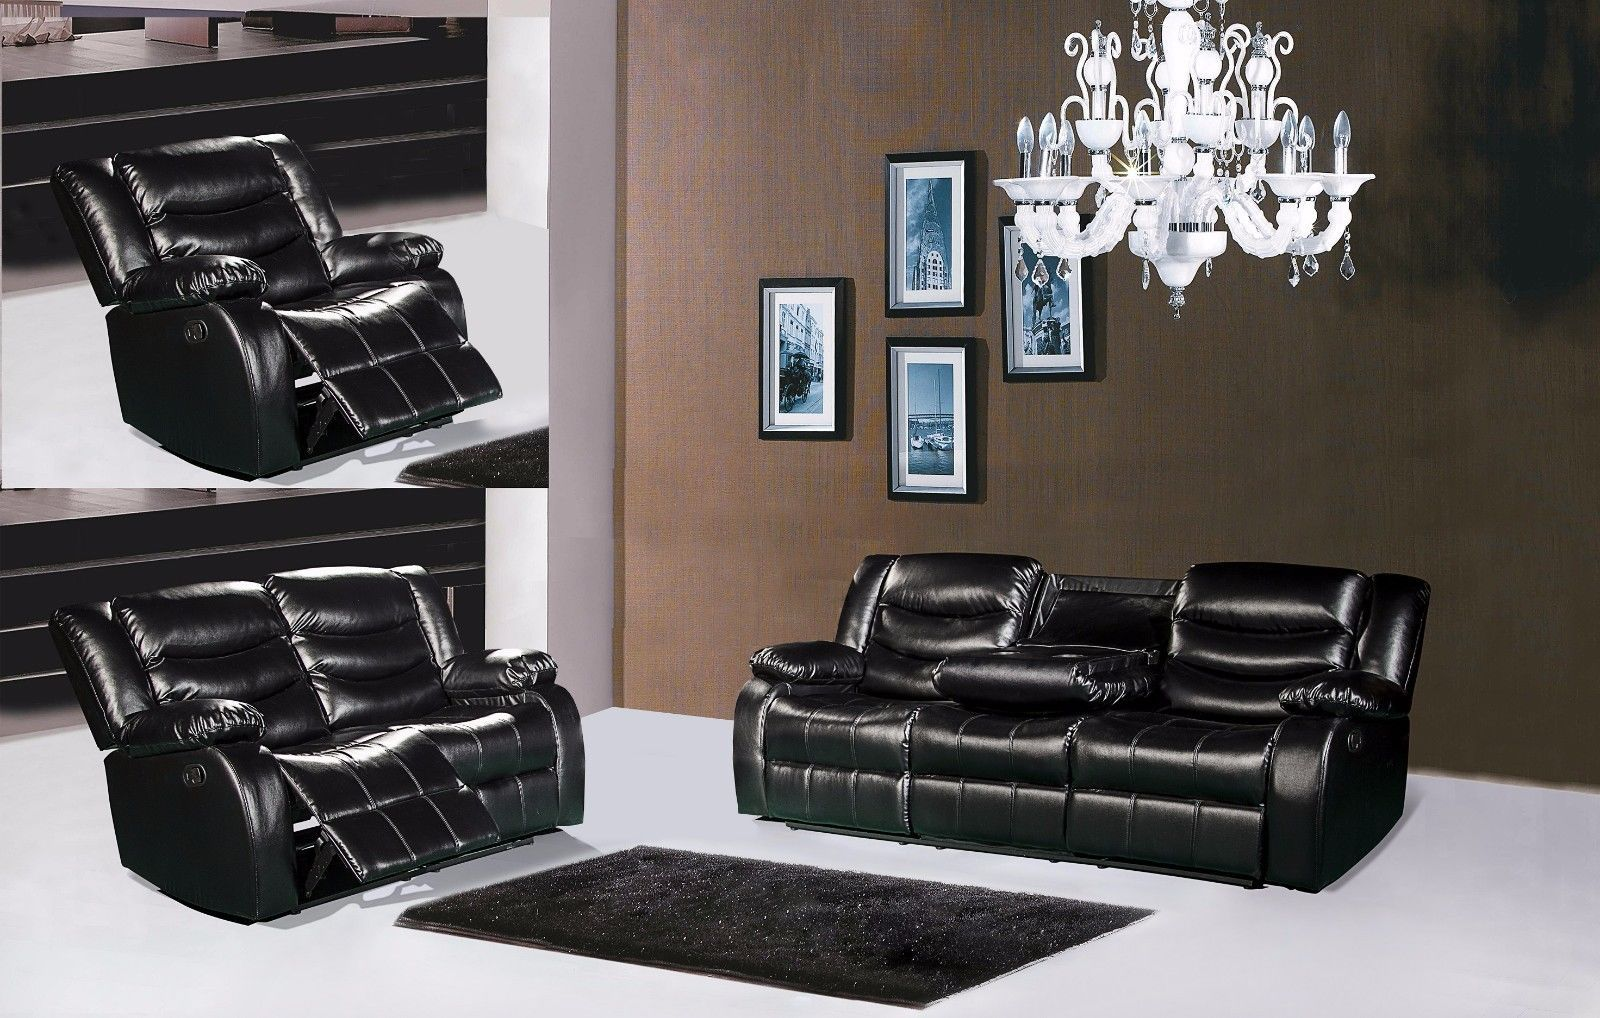 Meridian 644 Bonded Leather Living Room Sofa Reclining Black Contemporary Style